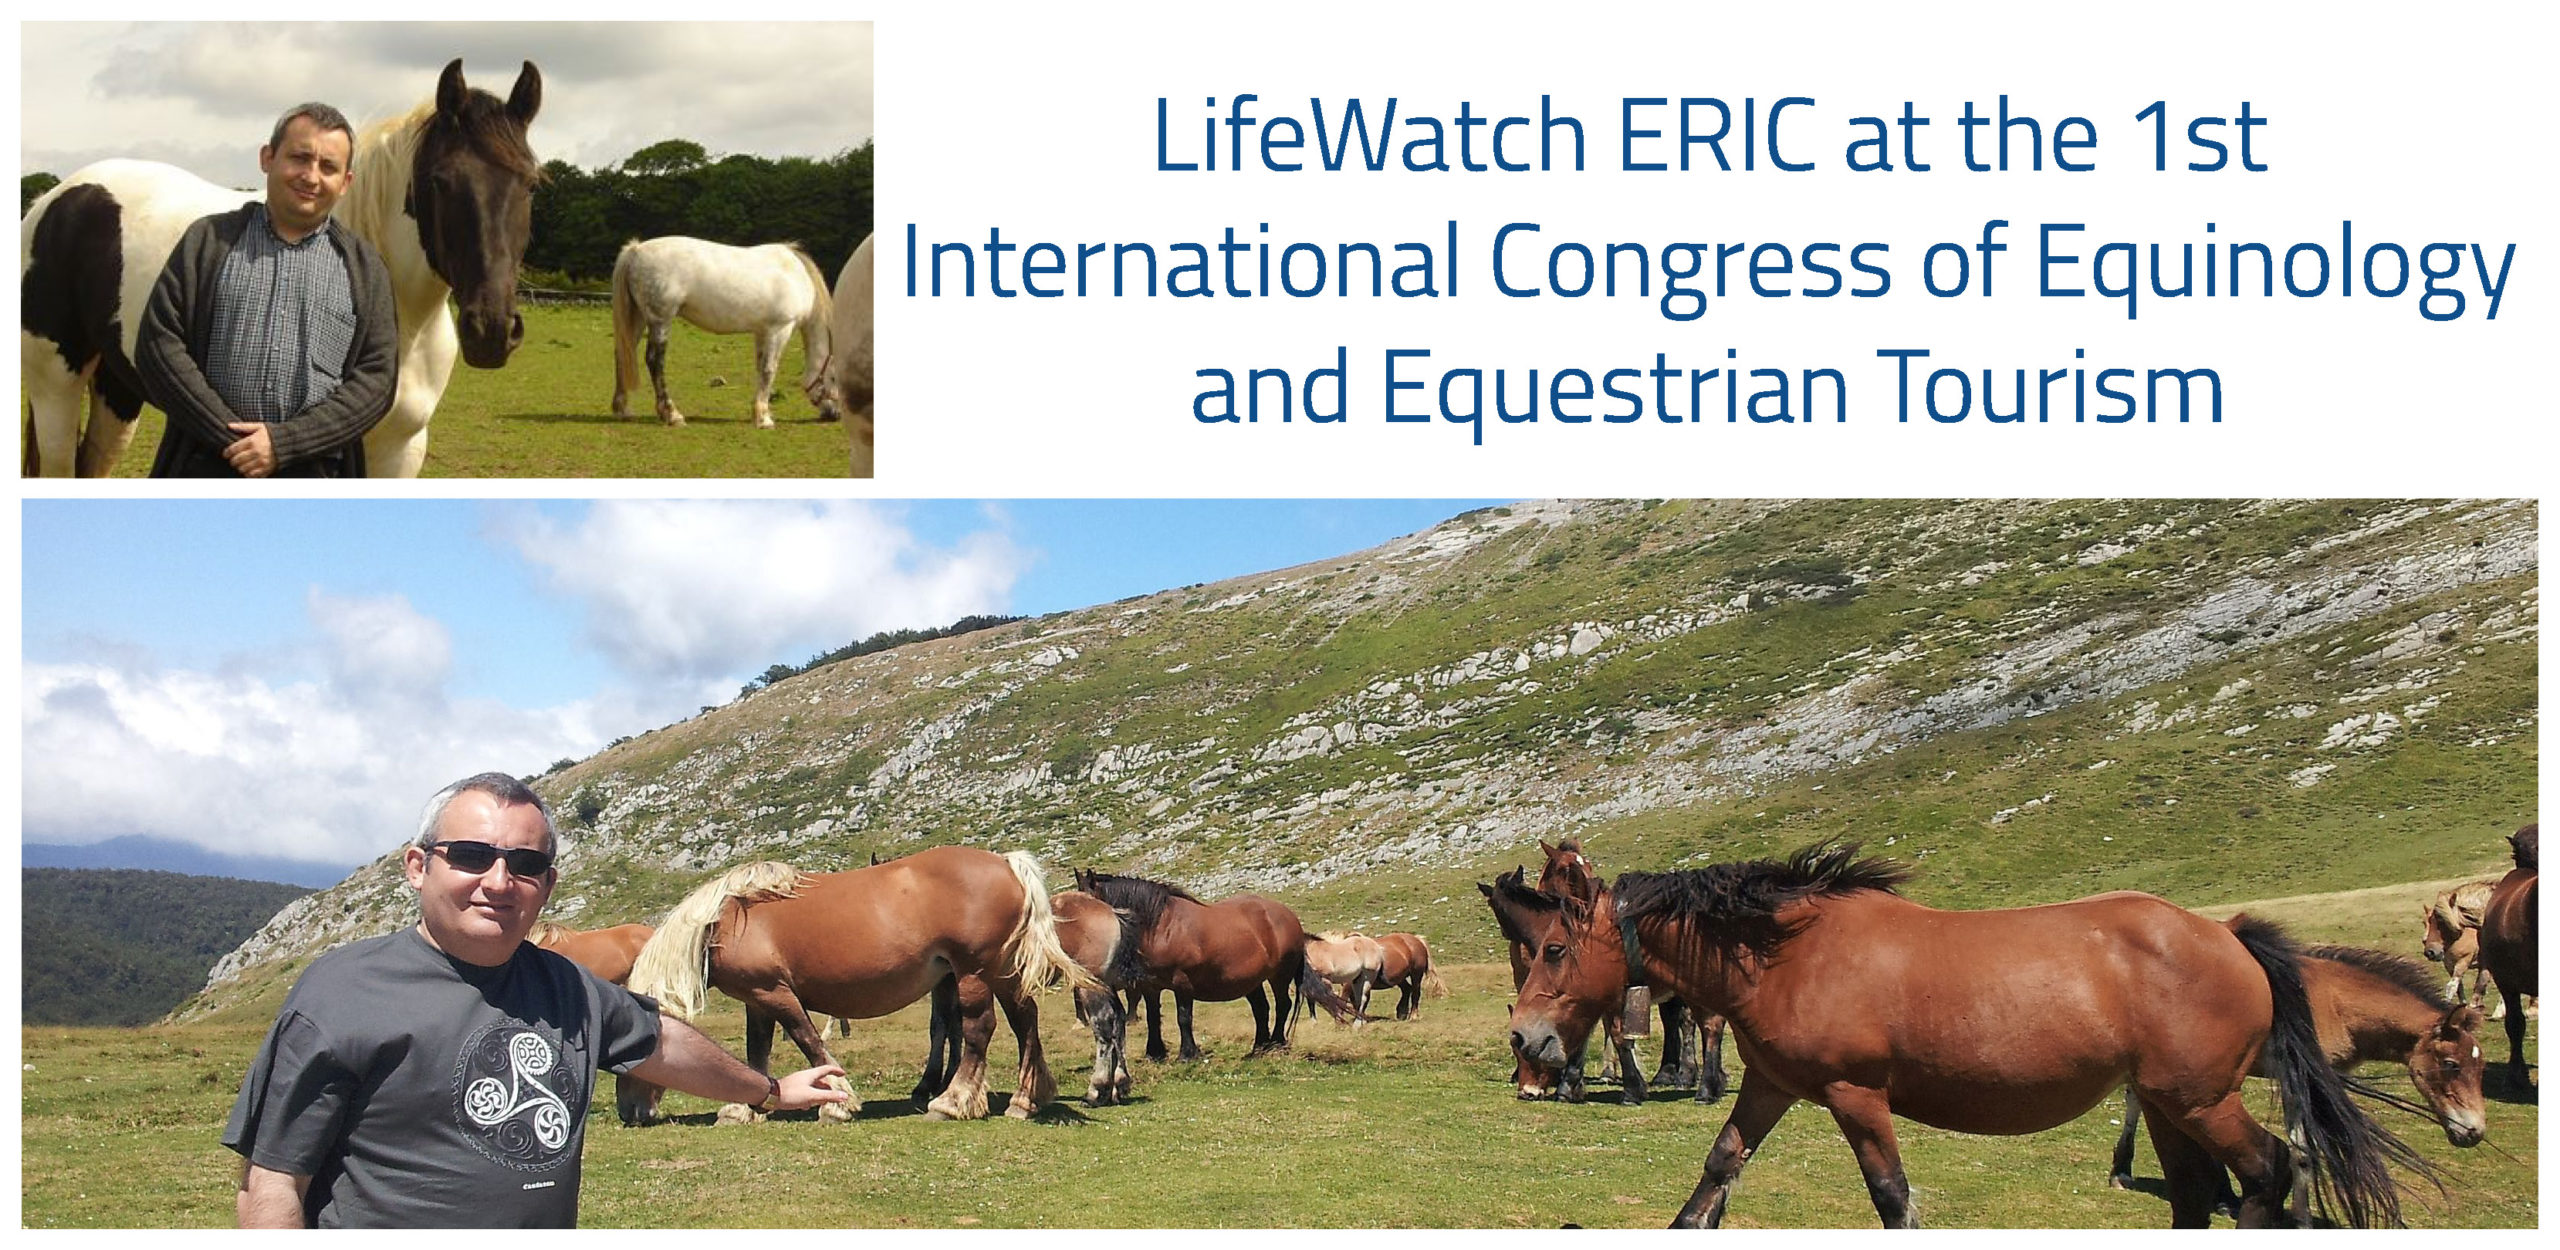 LifeWatch ERIC at the 1st International Congress of Equinology and Equestrian Tourism